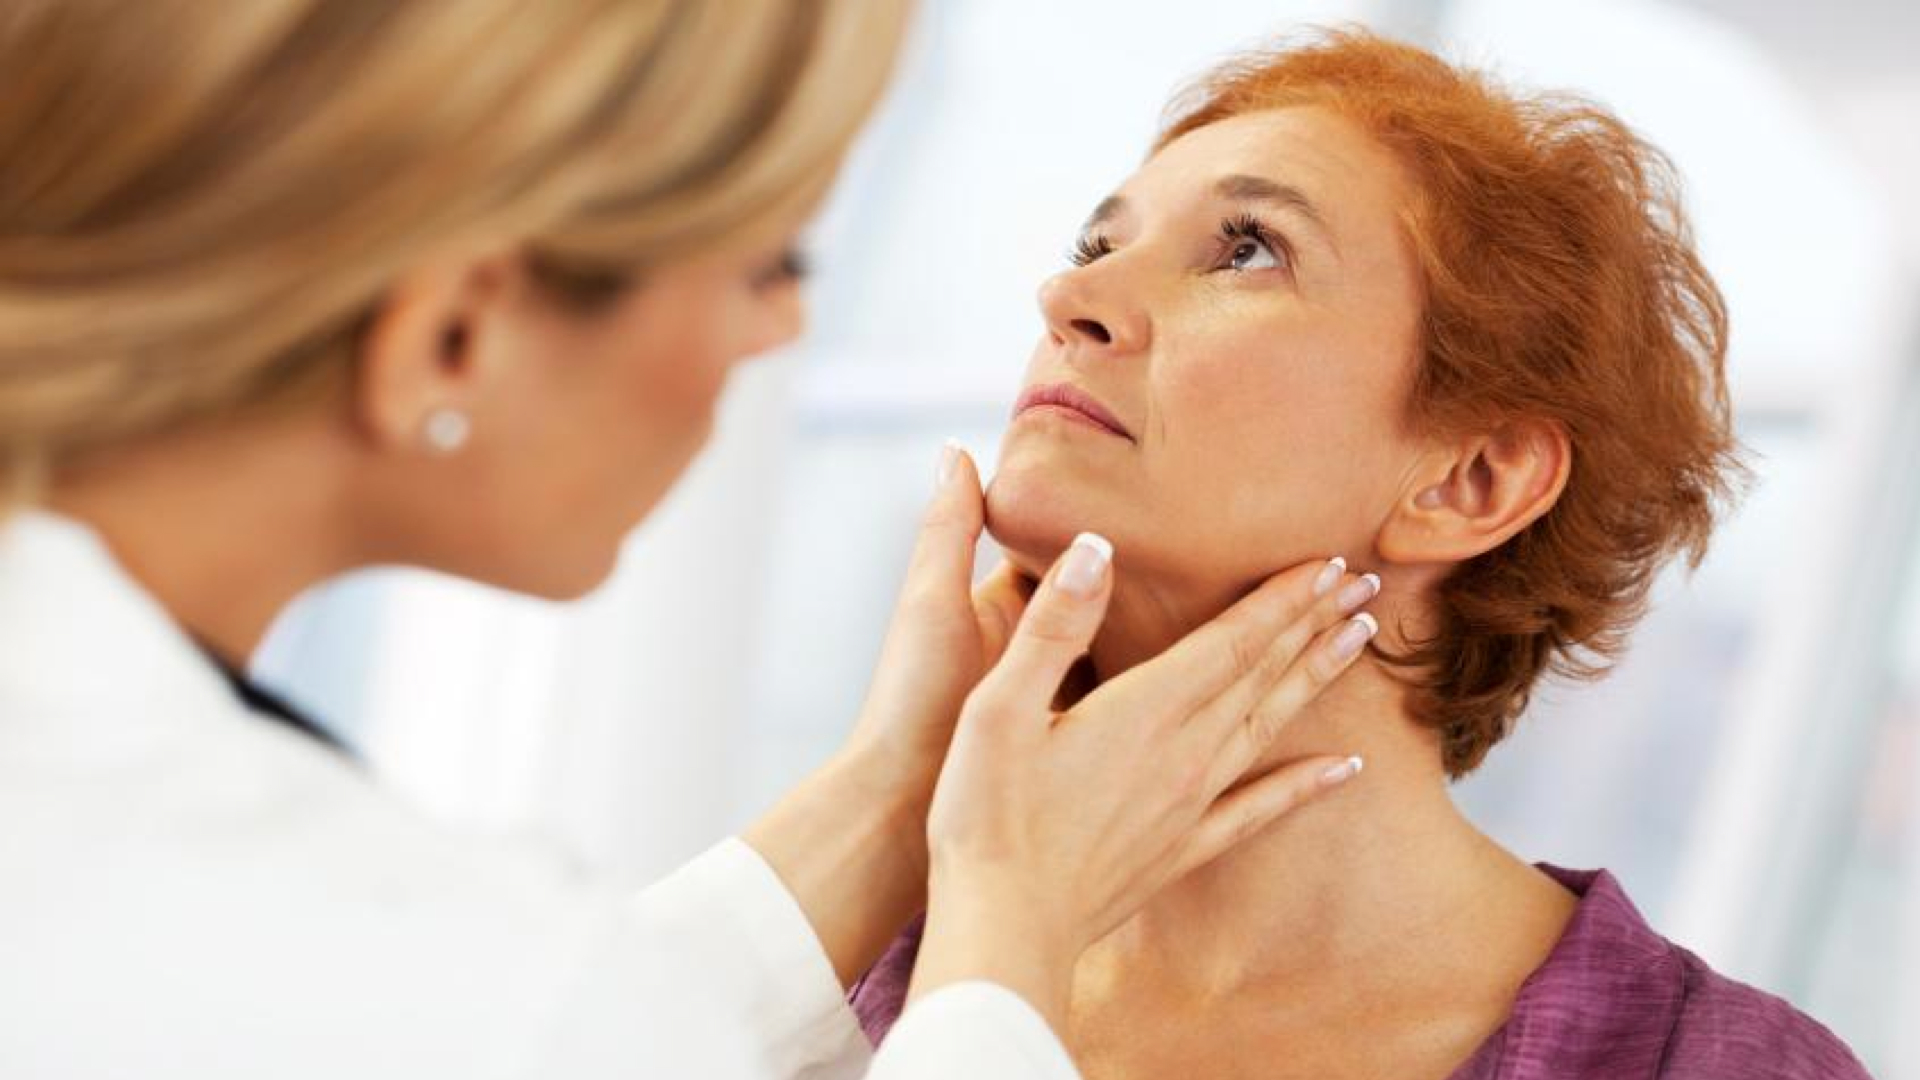 8 Tips for Thyroid Health